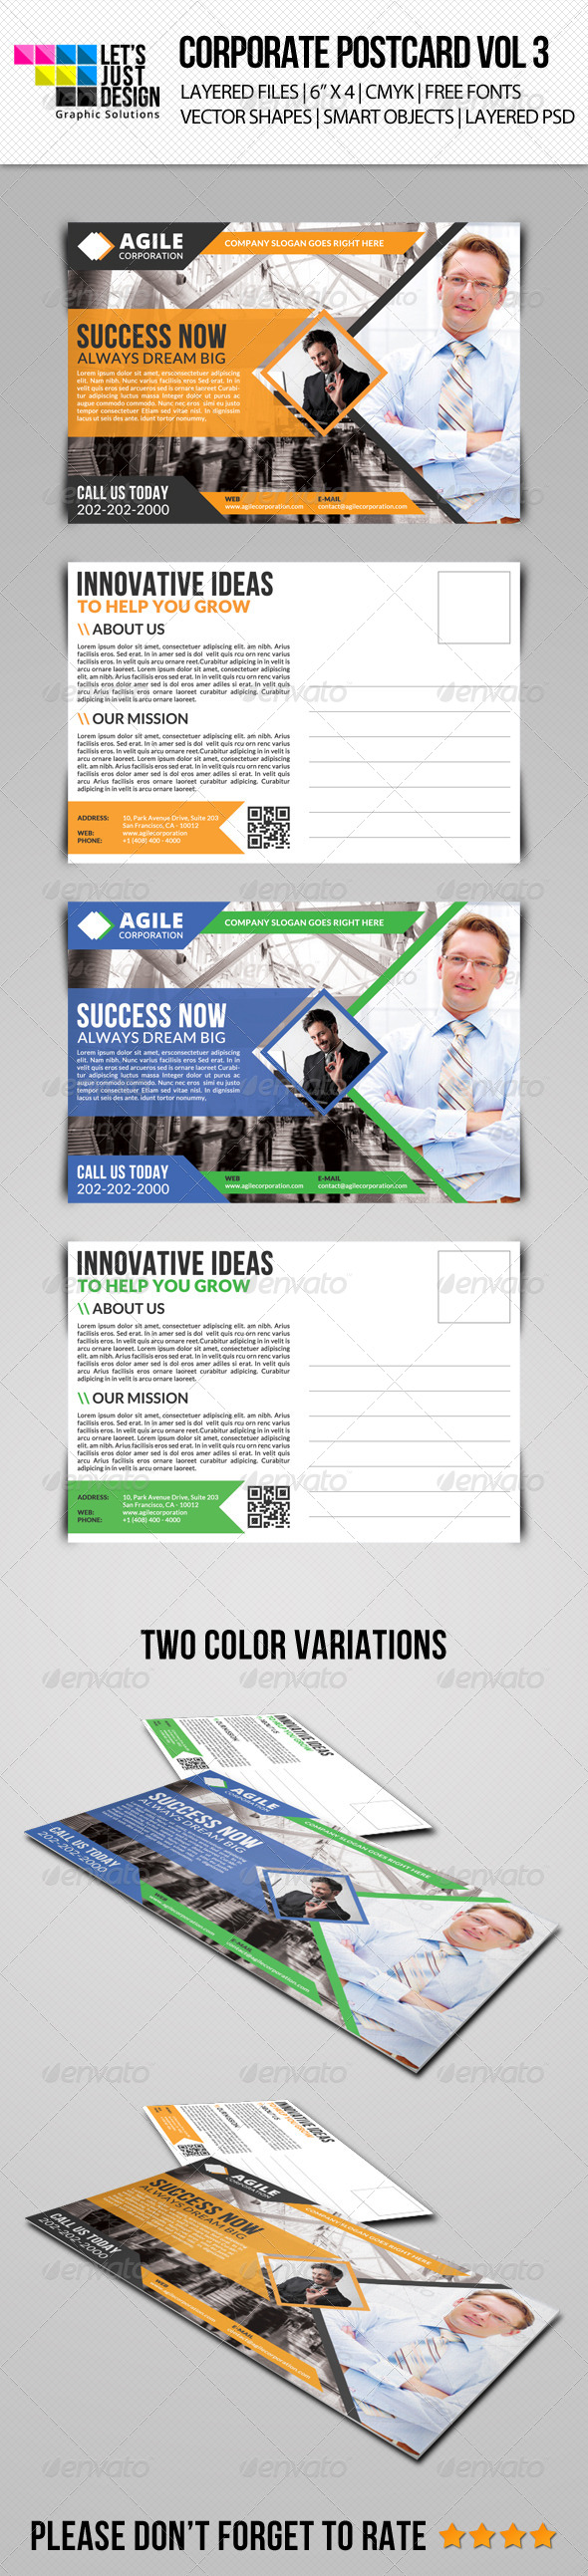 GraphicRiver Corporate Postcard Template Vol 3 7986481